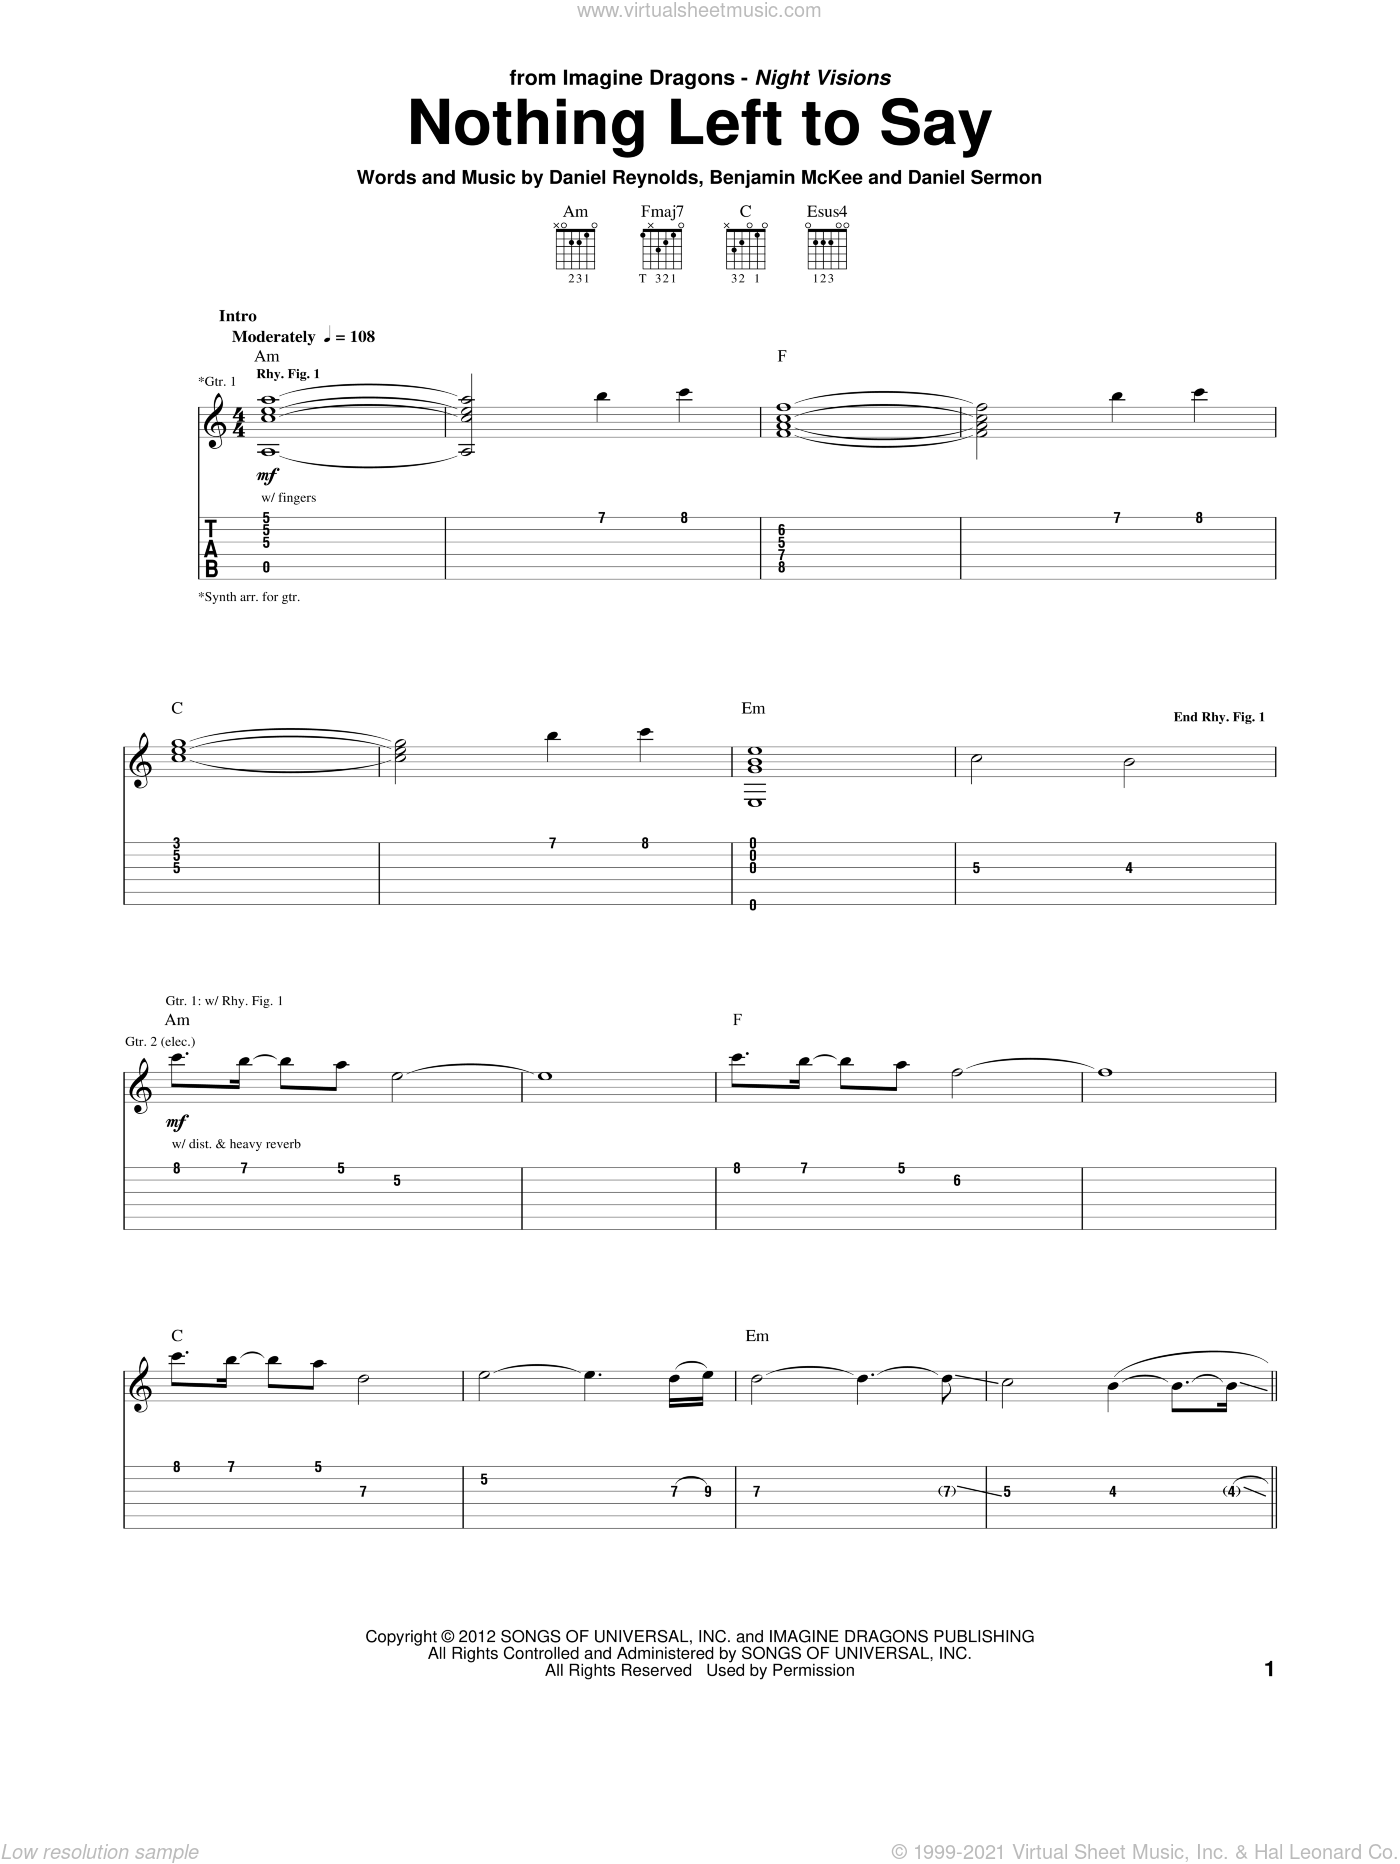 Nothing Left To Say sheet music for guitar (tablature) by Imagine Dragons